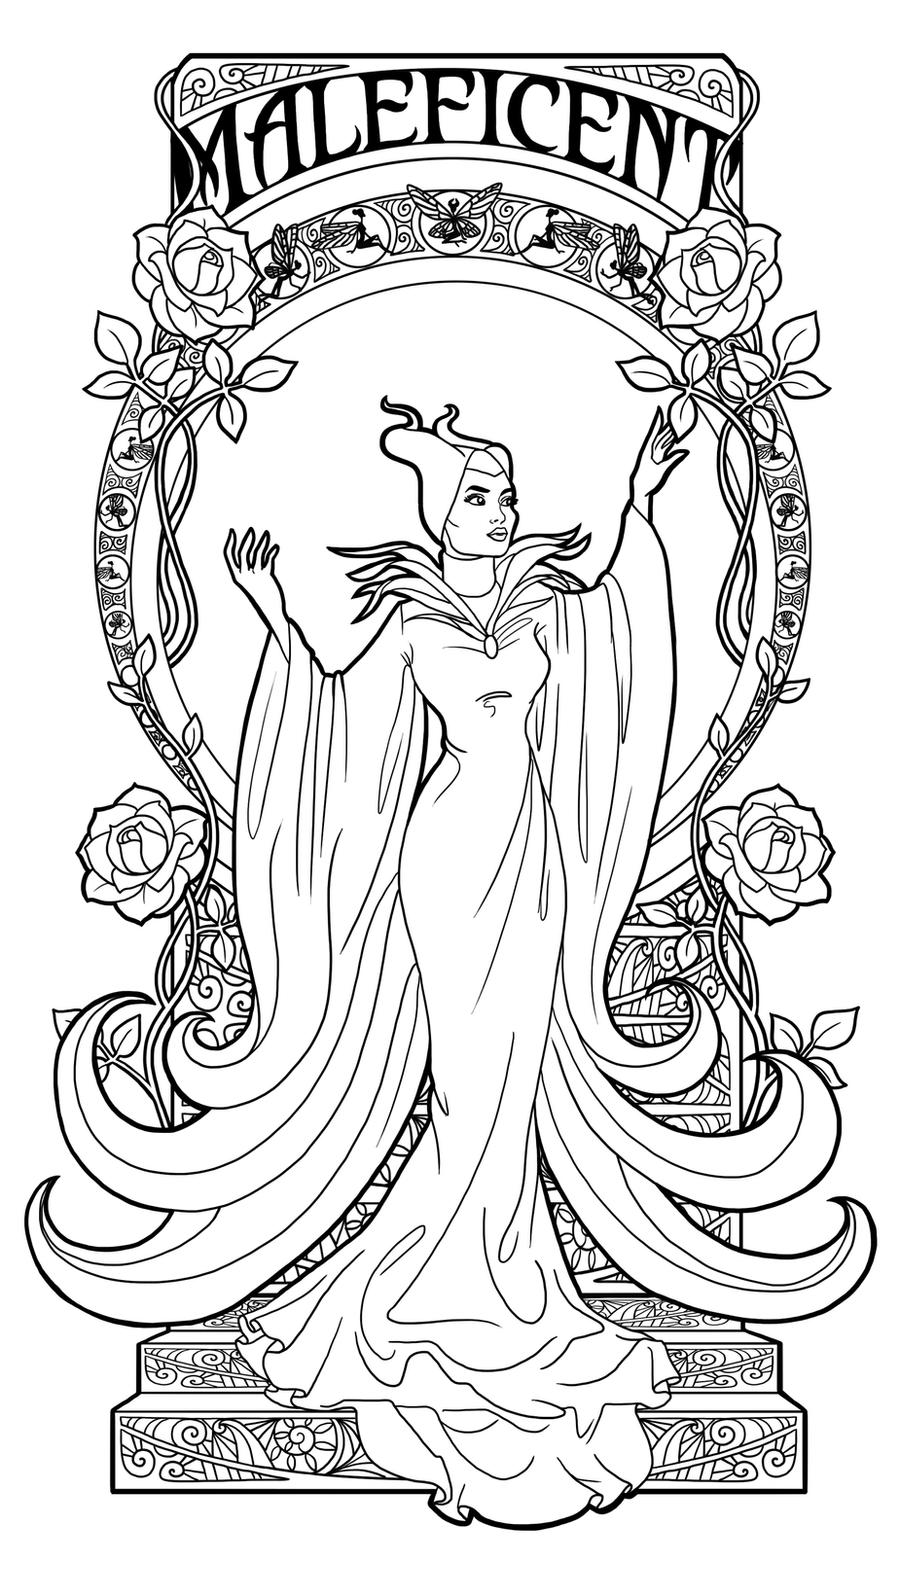 Maleficent art nouveau lineart by paola tosca on for Maleficent coloring pages